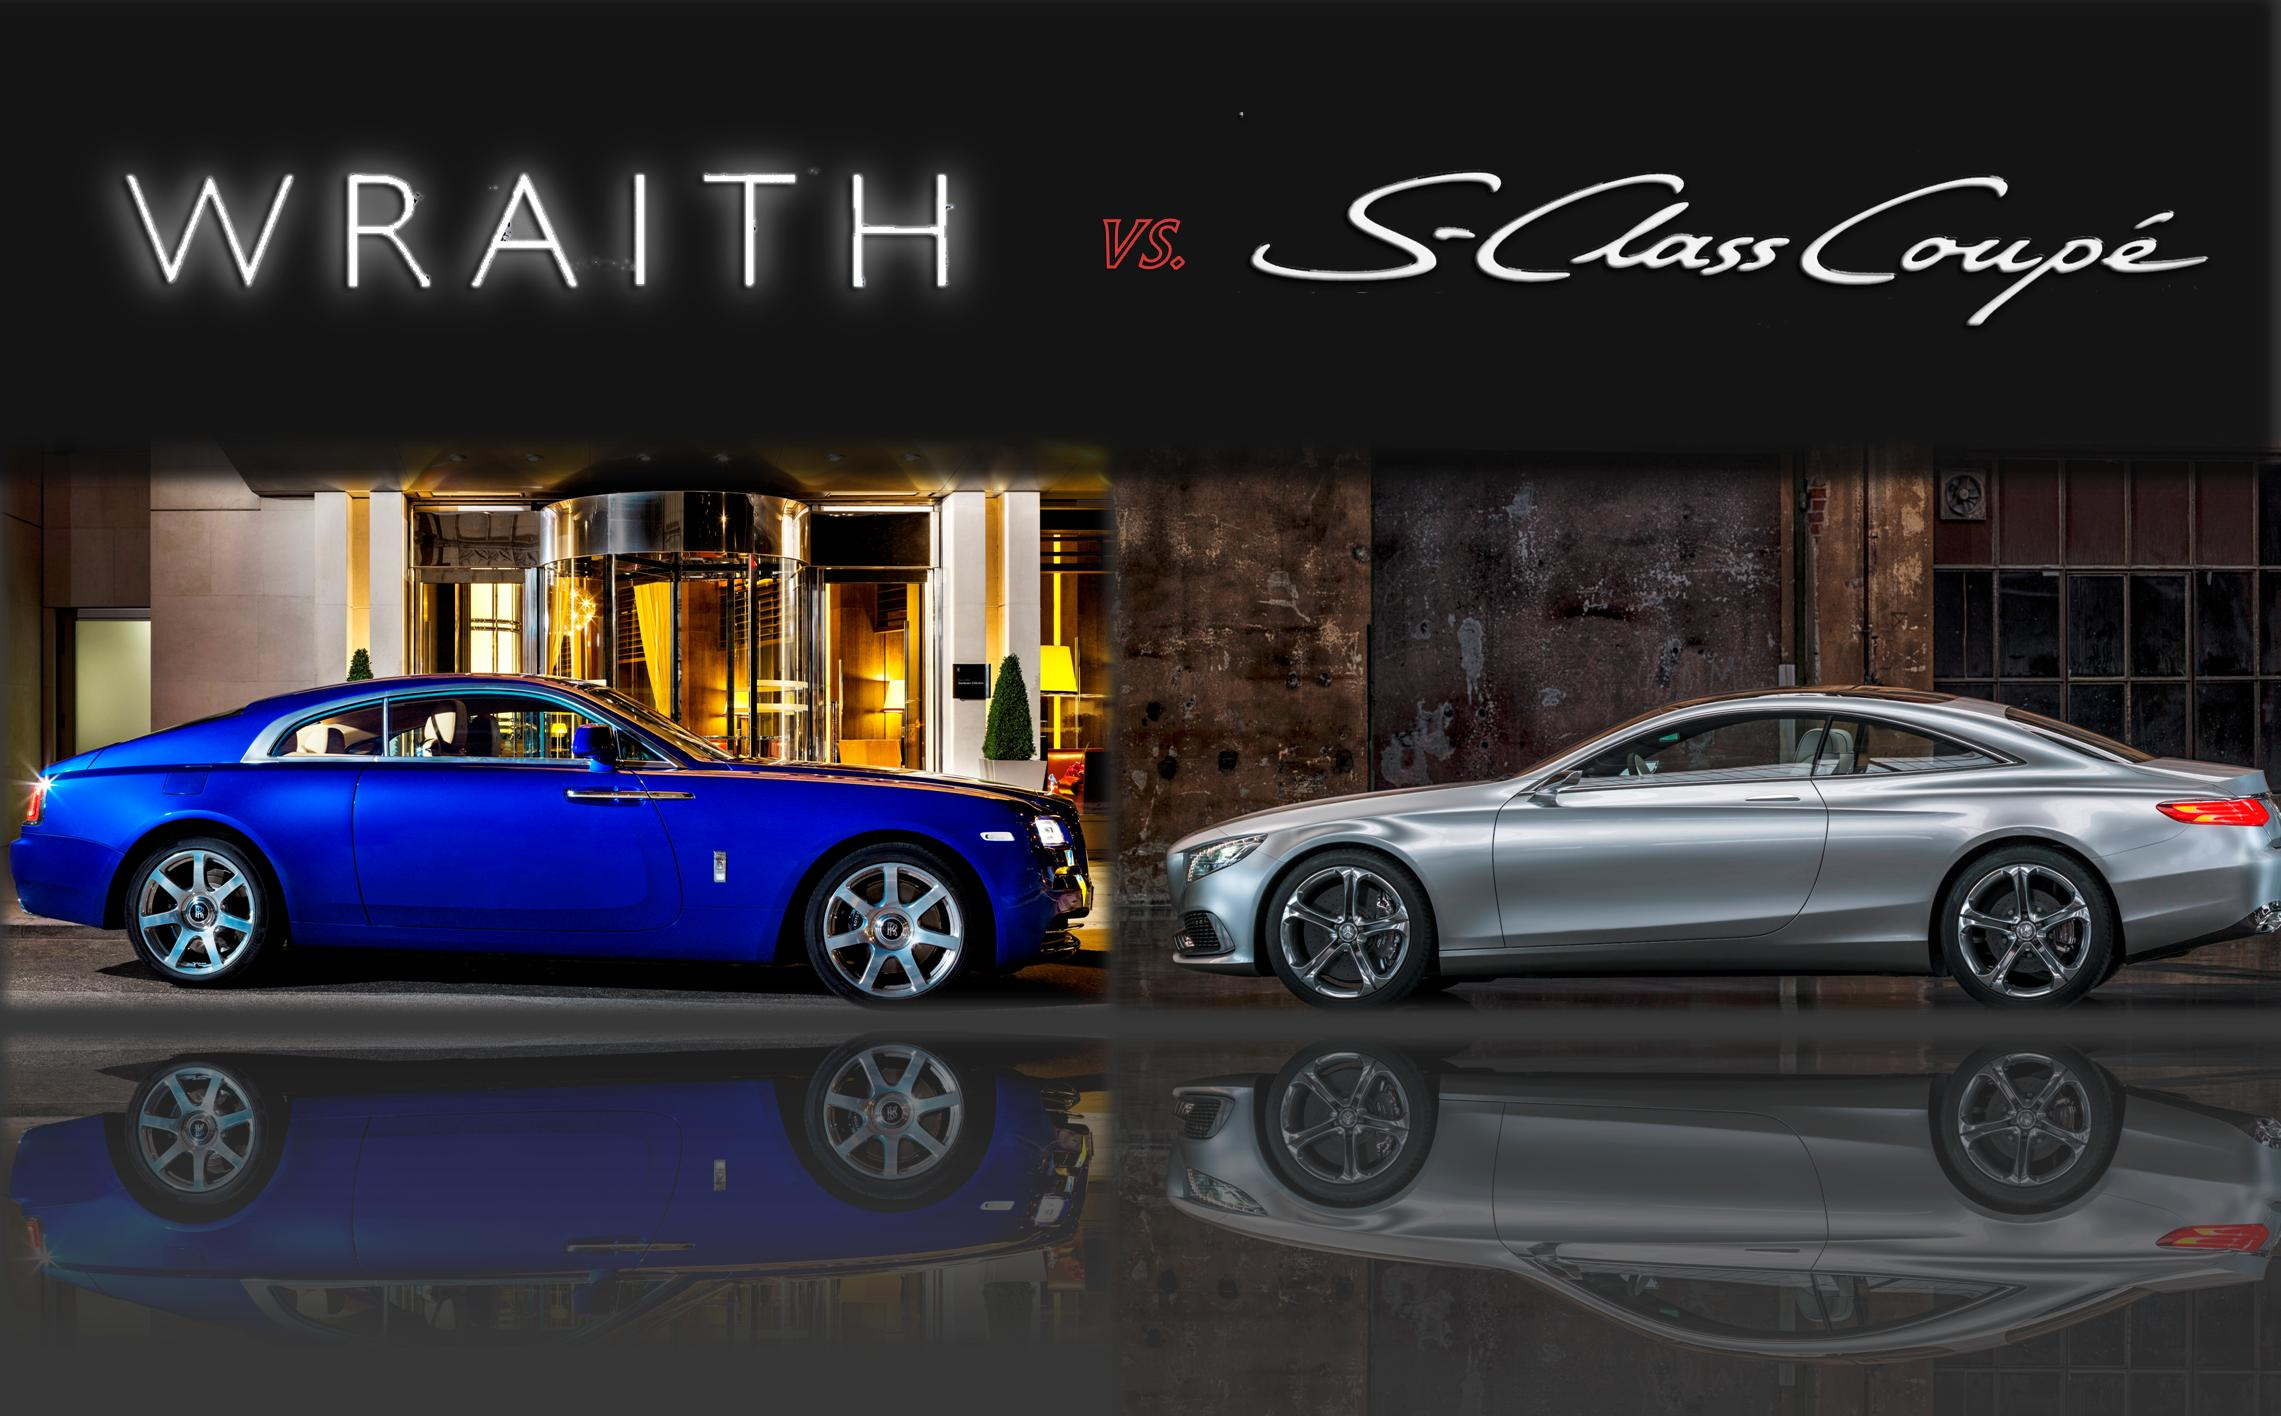 S Class Coupe >> TopSpeed Design Showdown: 2014 Rolls-Royce Wraith Vs 2013 S-Class Coupe Concept News - Top Speed